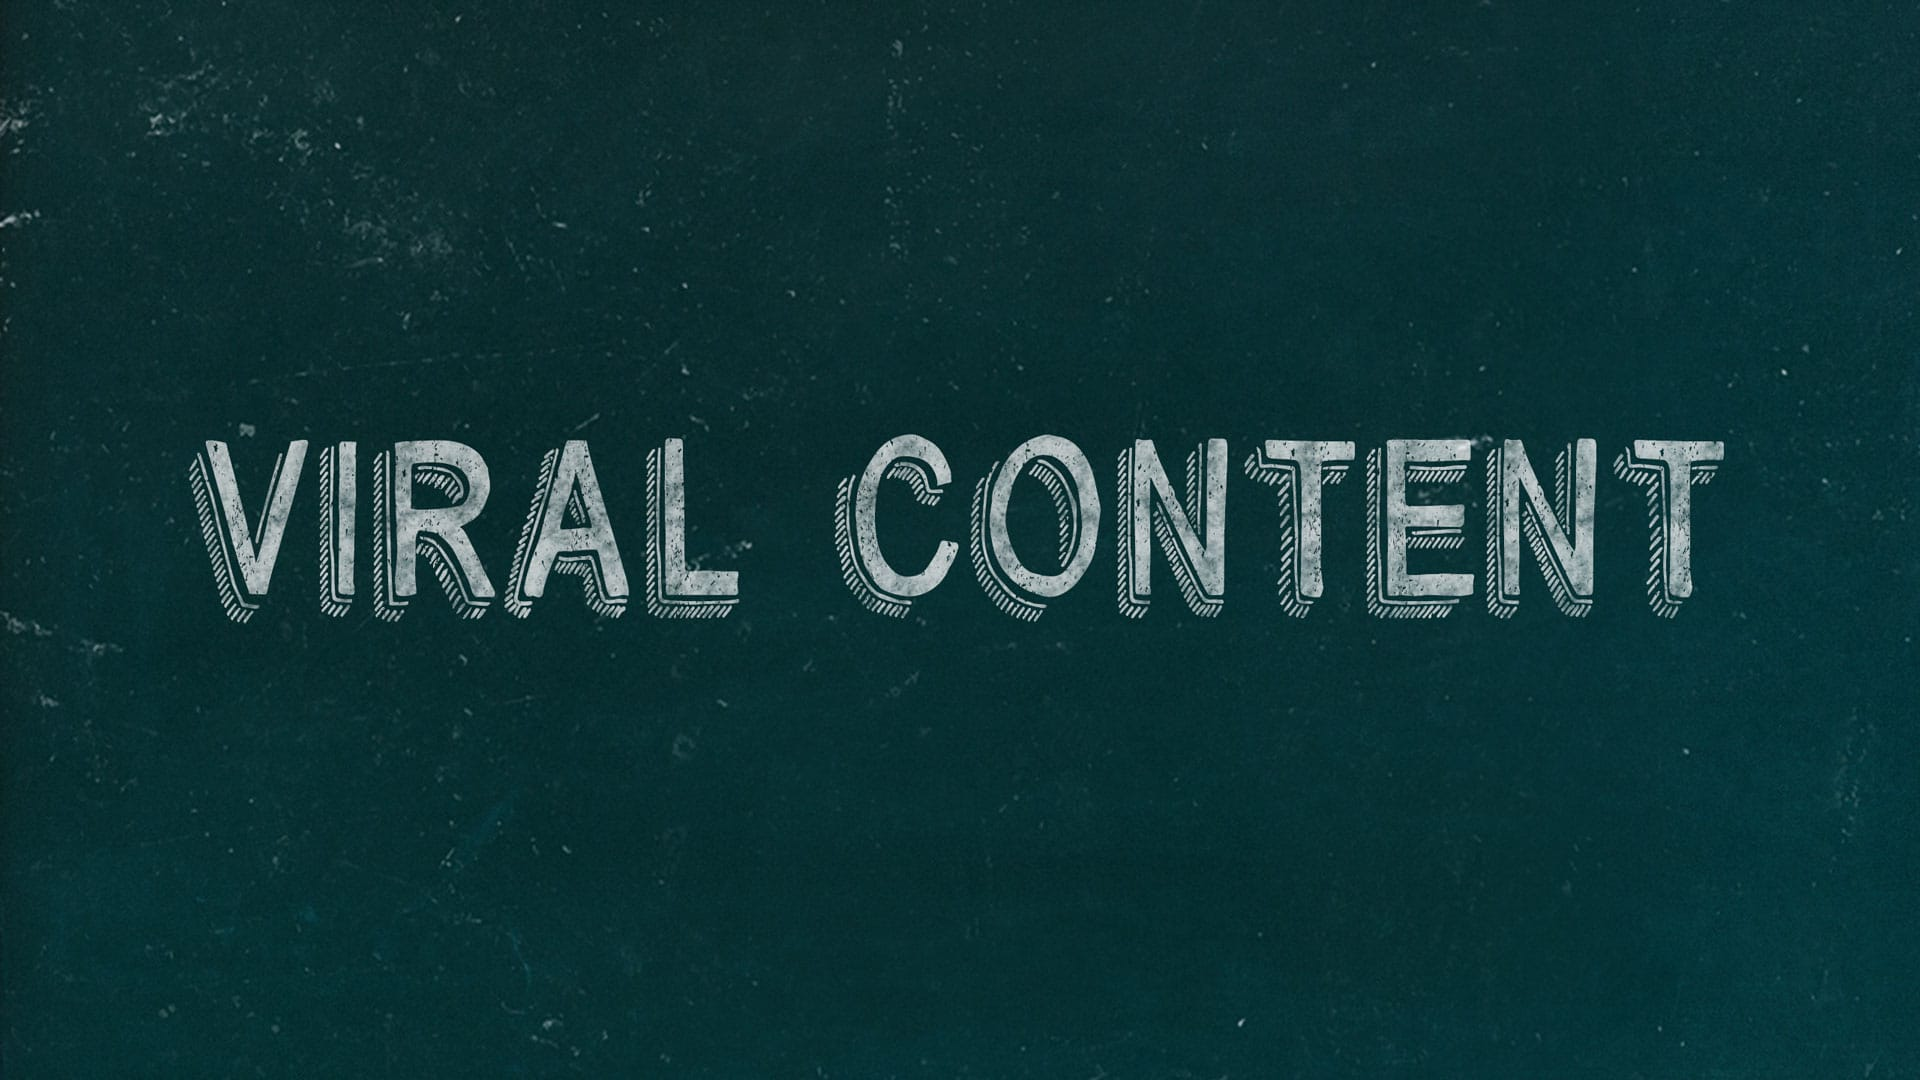 Viral Content Green Image